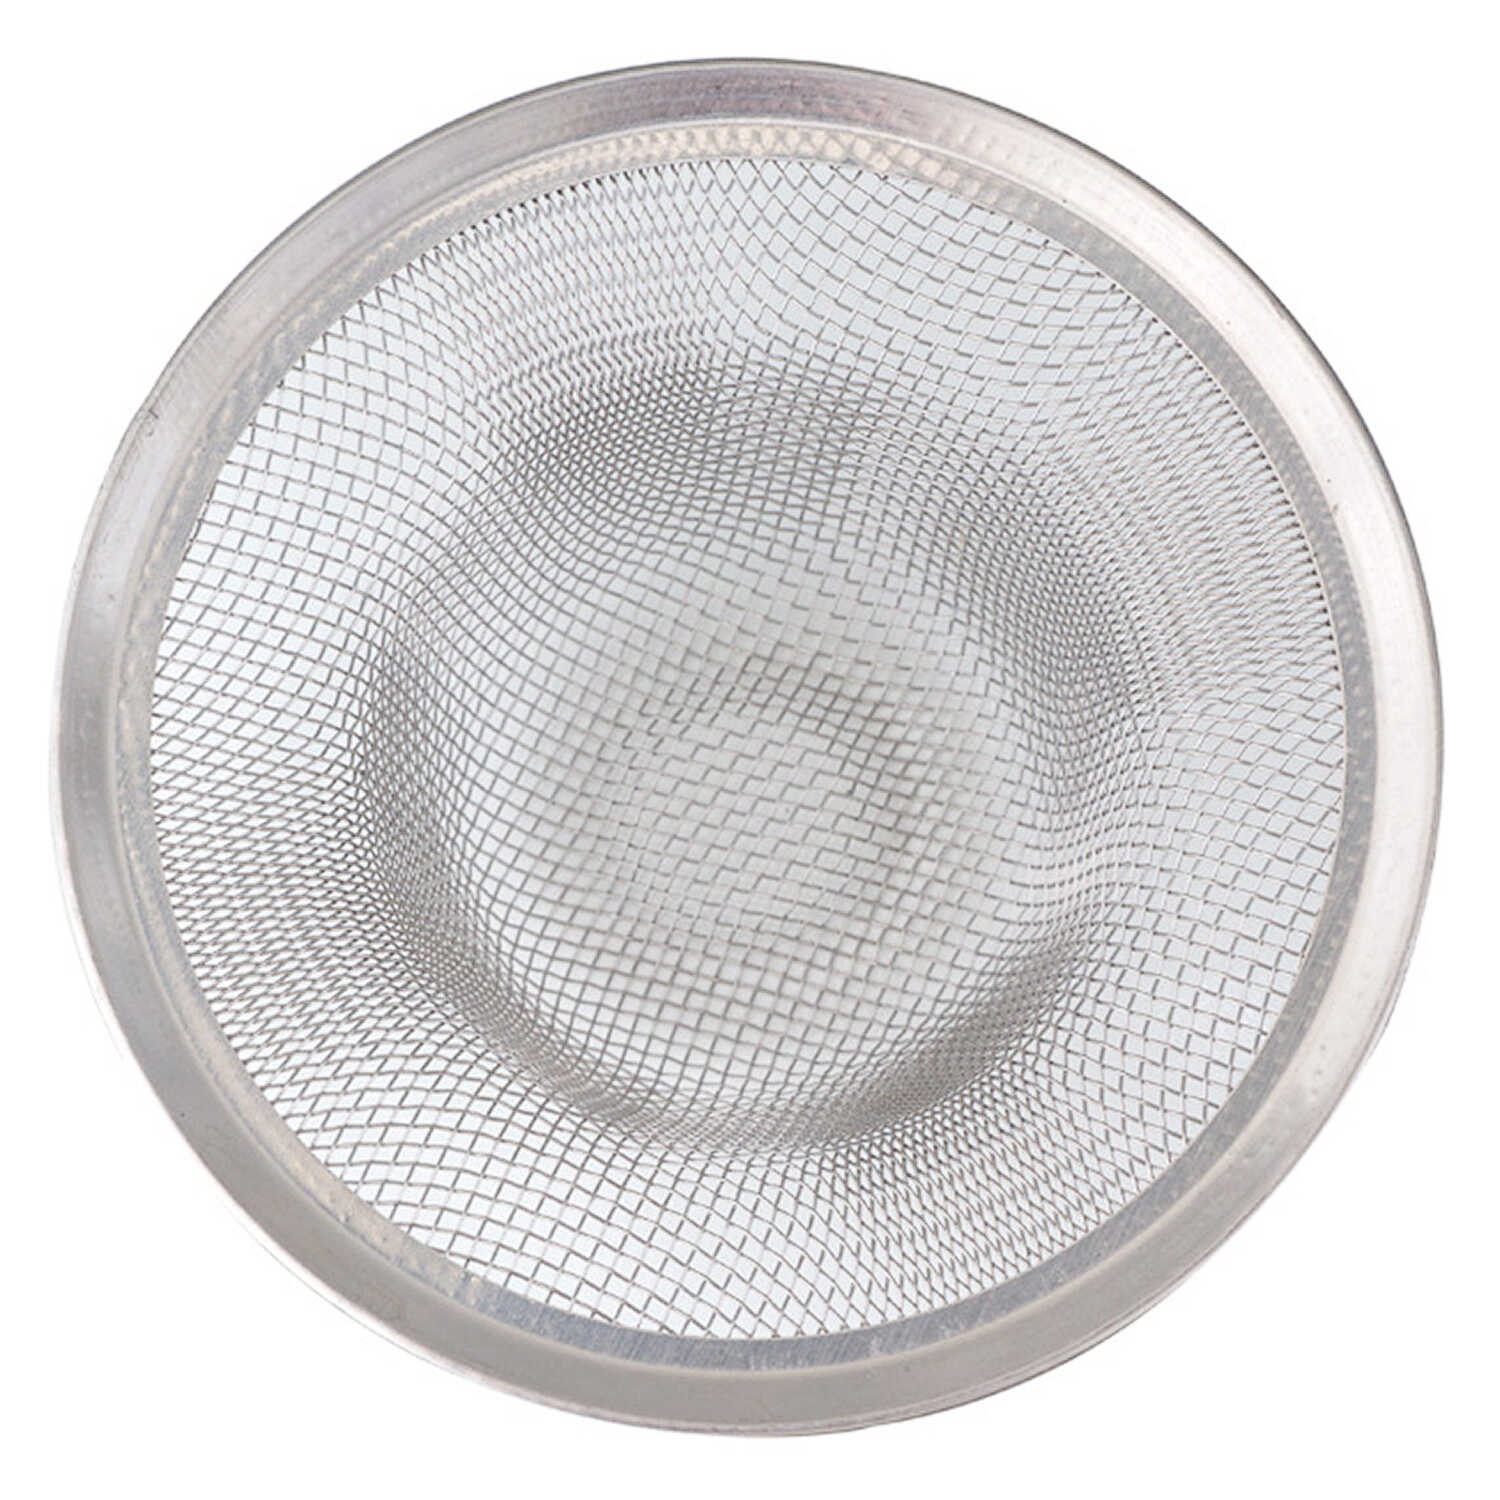 Whedon  Drain Protector  3.6 in. Round  Shower Drain Strainer